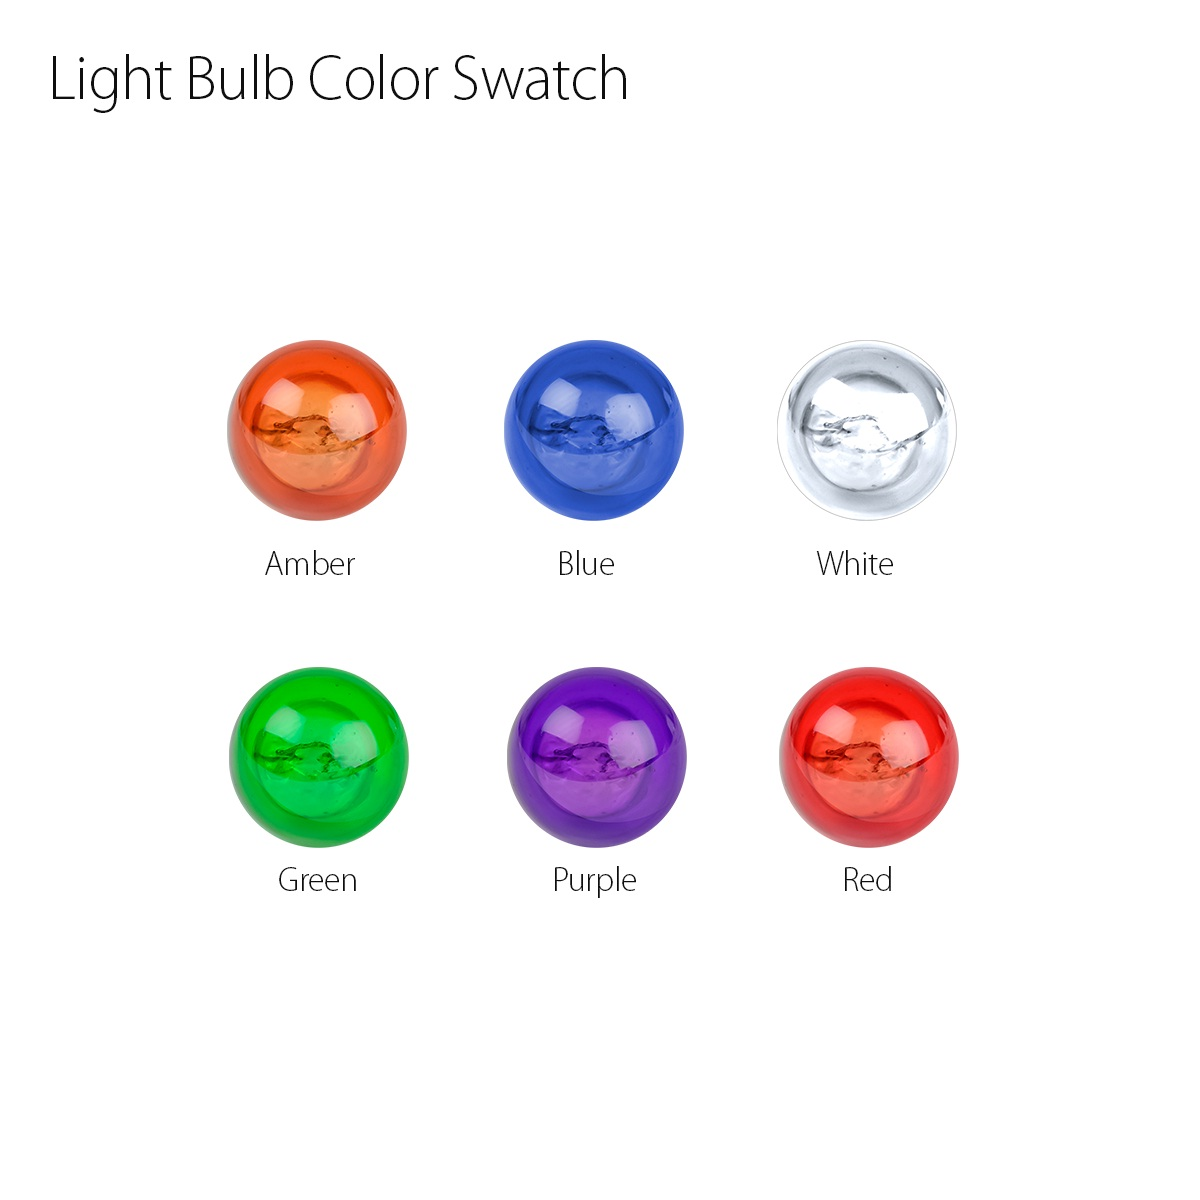 Miniature Replacement Light Bulbs Color Swatch